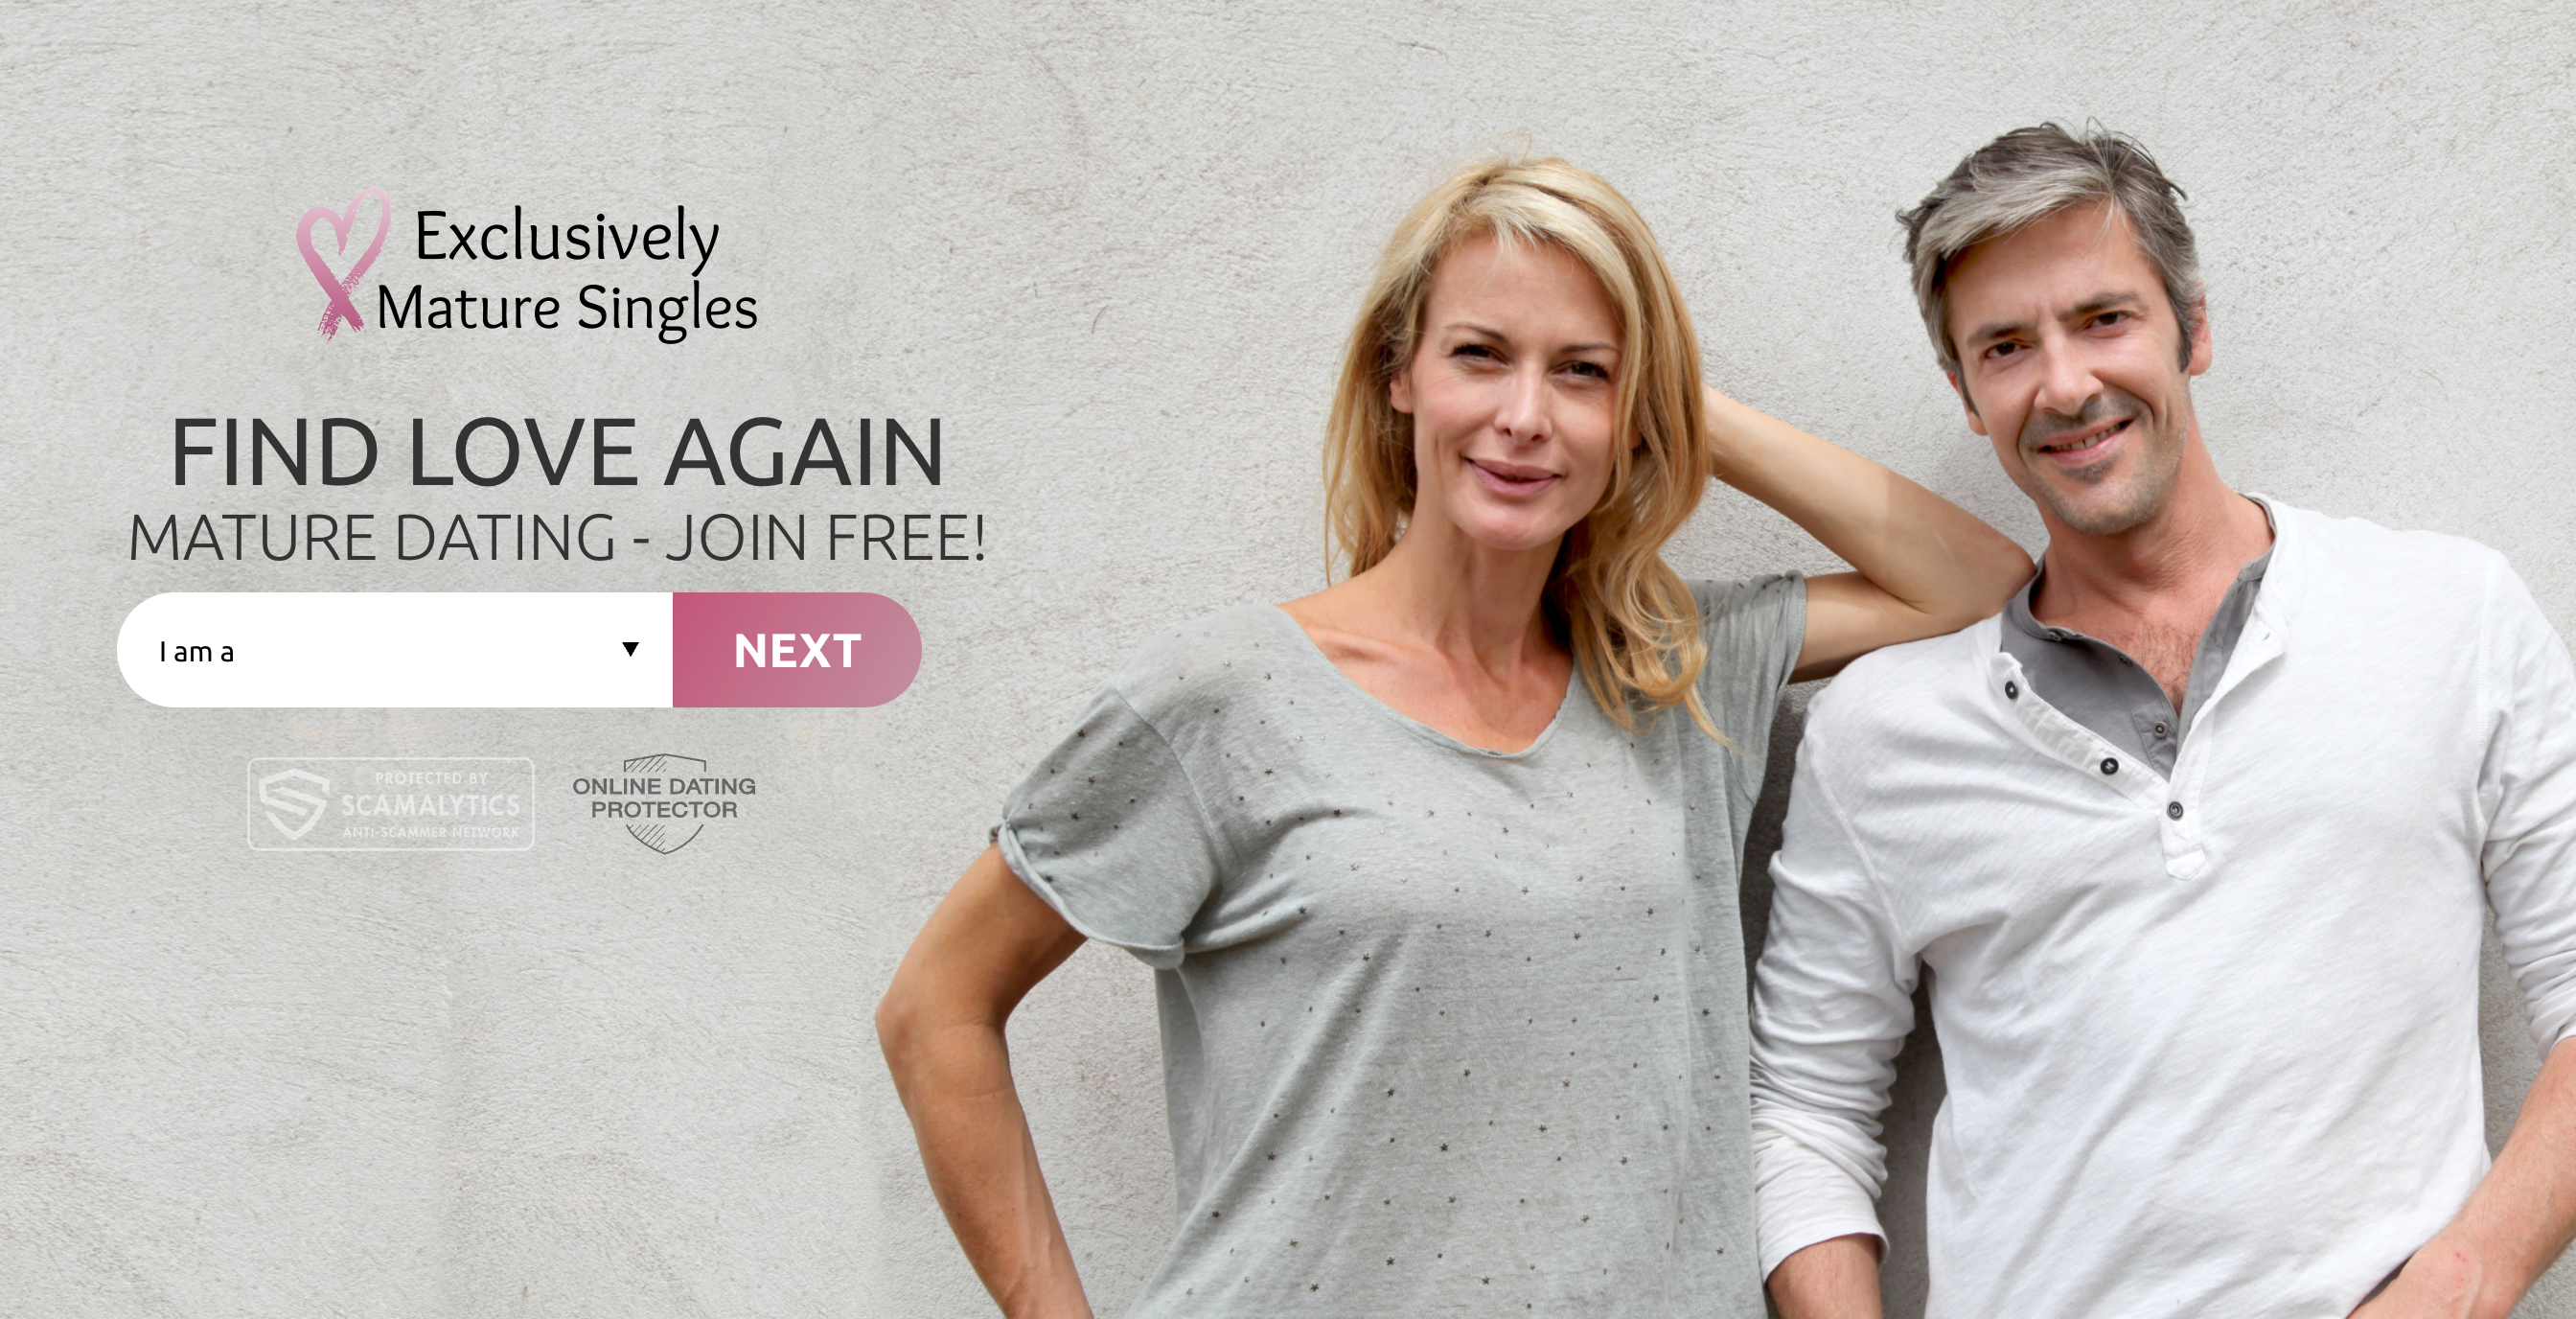 Senior Dating Agency Grows 'White Label Dating' Portfolio With Exclusive Over 50s Niche